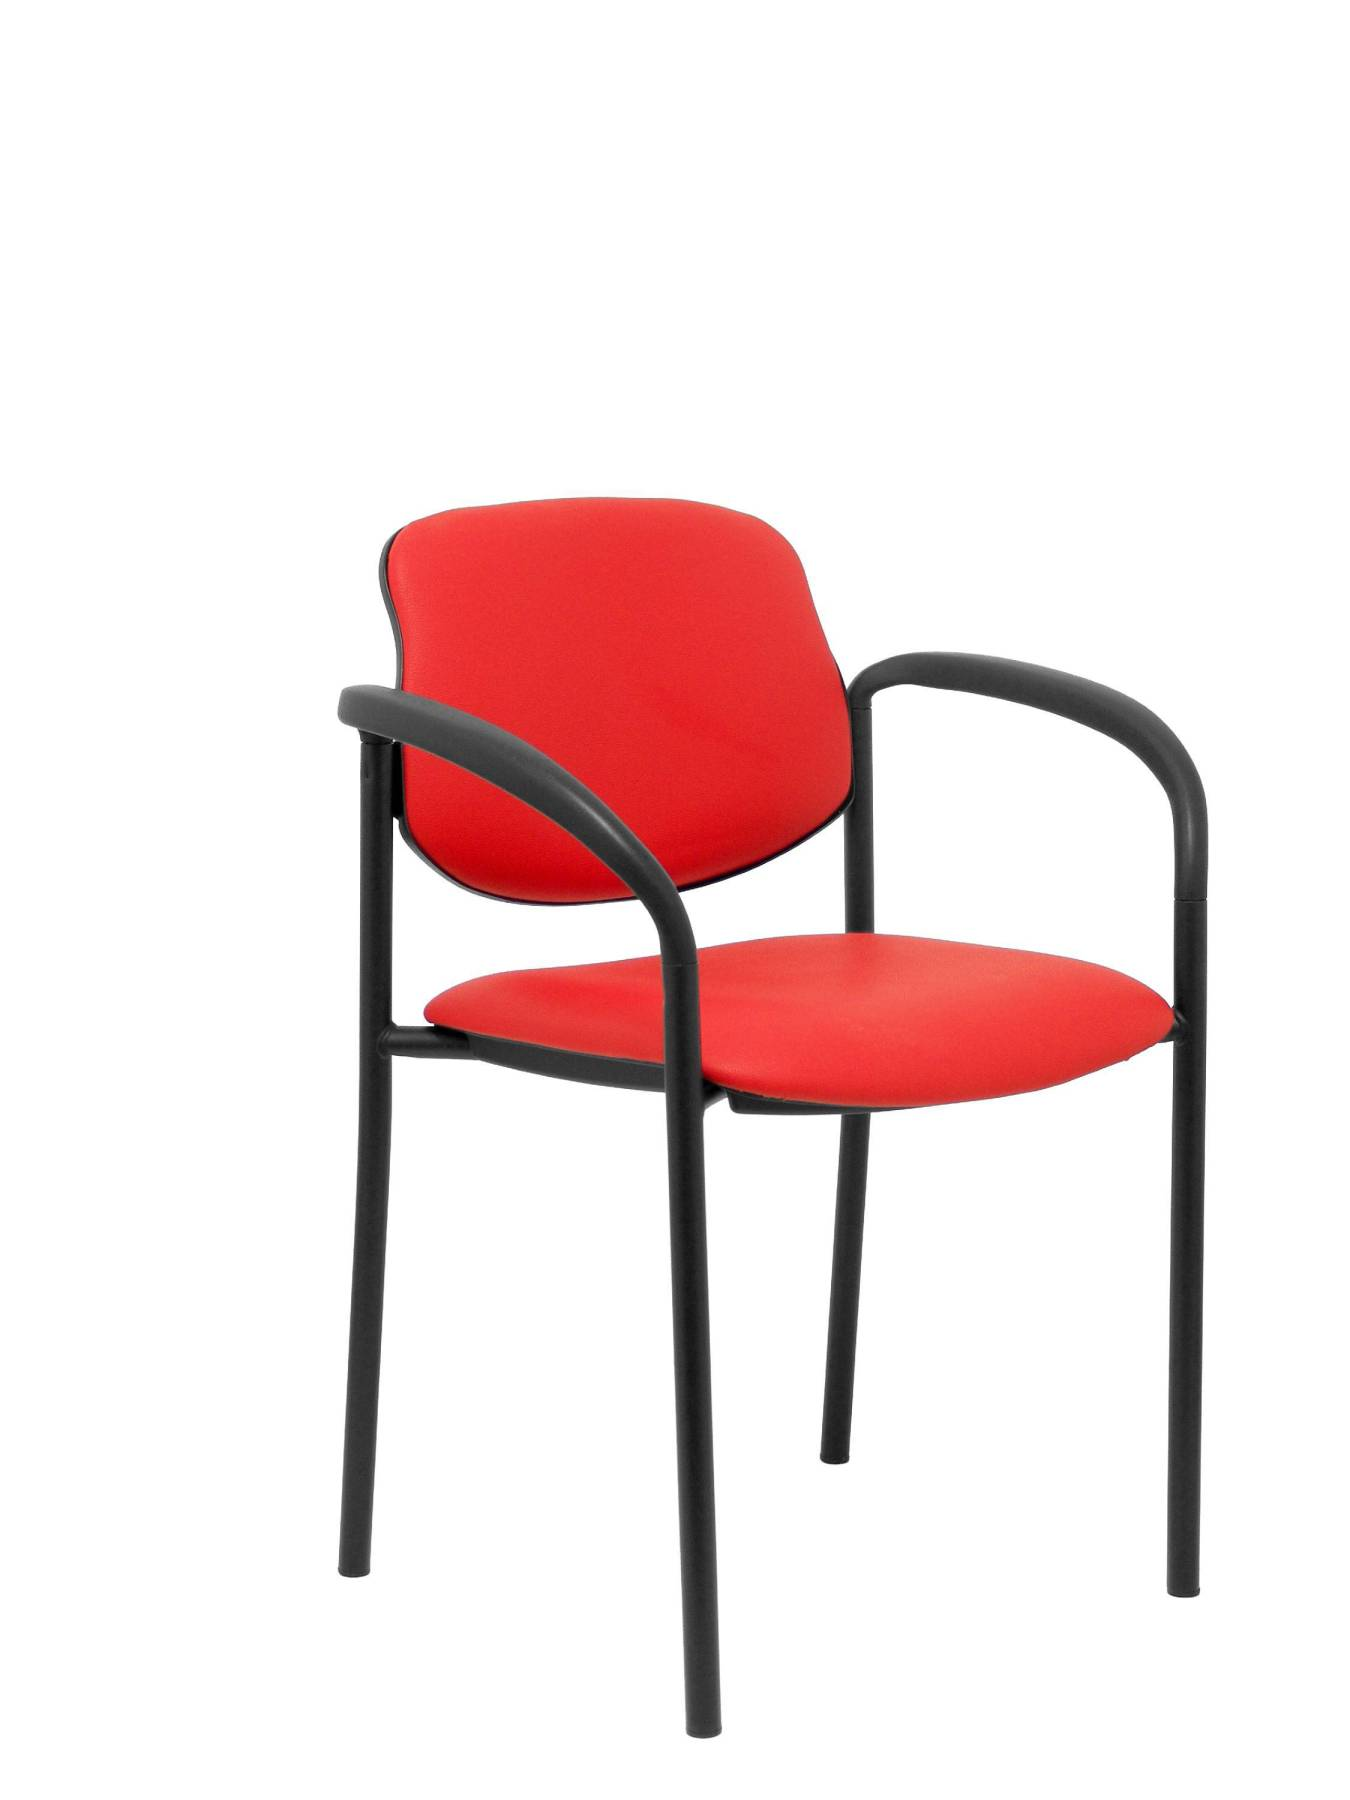 Visitor Chair 4's Topsy, With Arms And Estructrua Negro-up Seat And Backstop Upholstered In Tissue Similpiel Red PIQUE